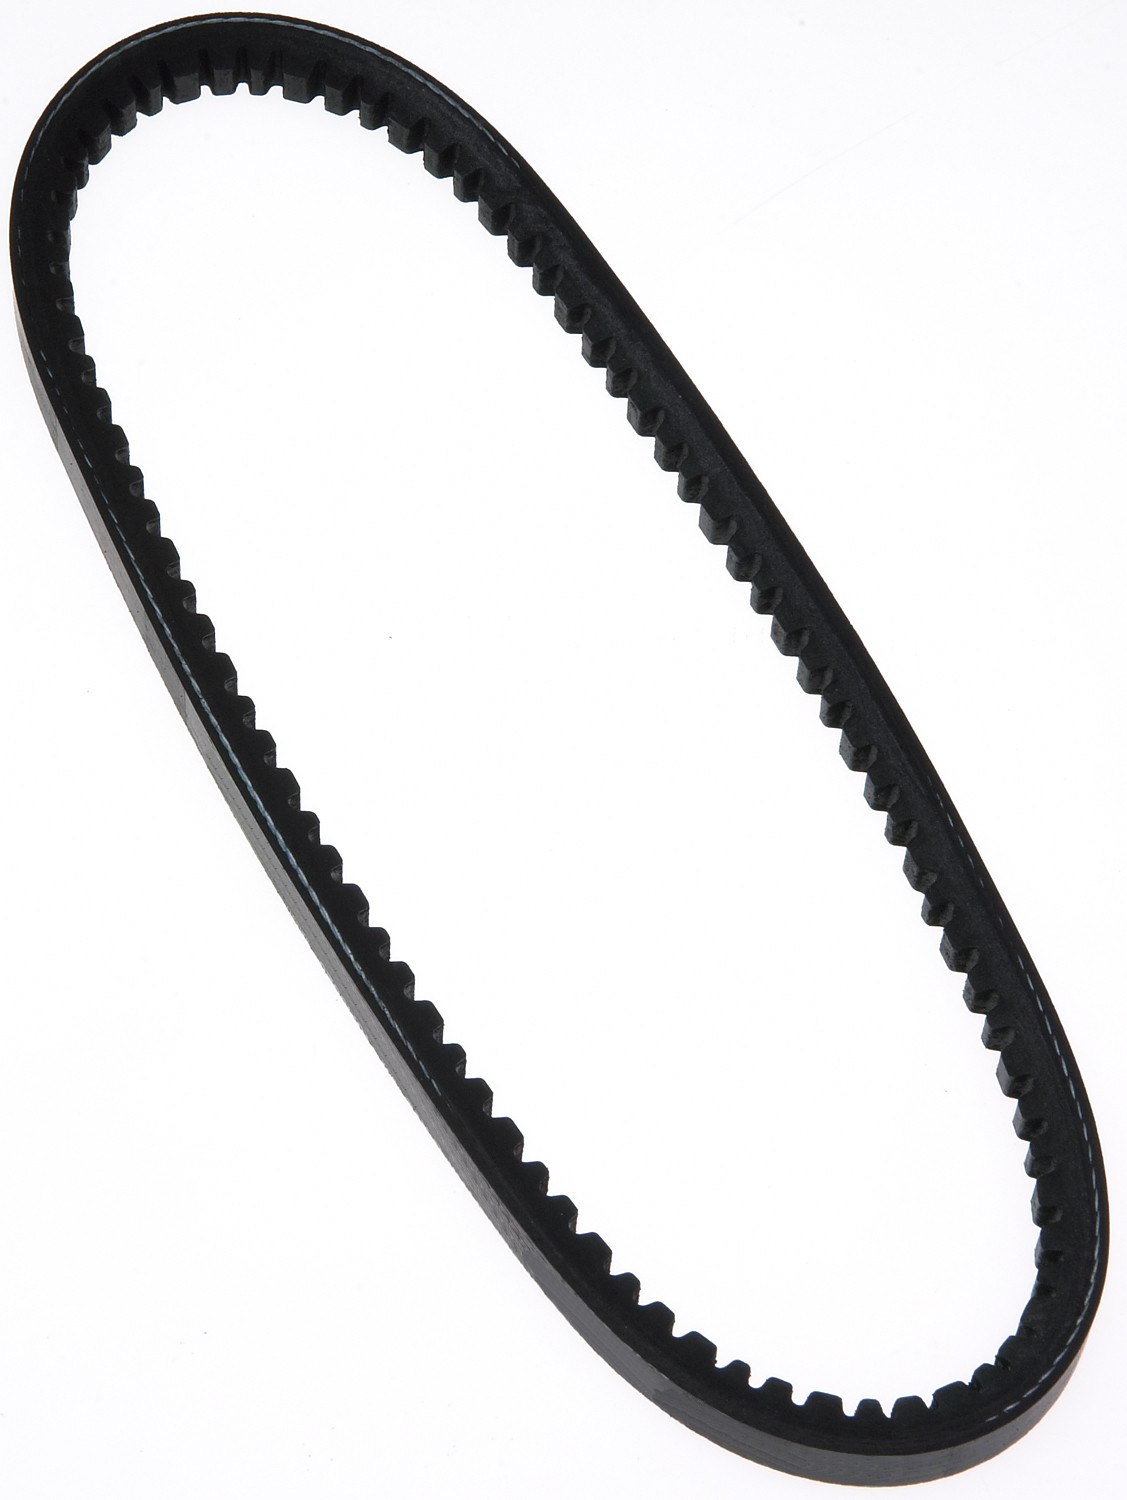 ROADMAX - High Capacity V-belt(standard) - RMX 17325AP